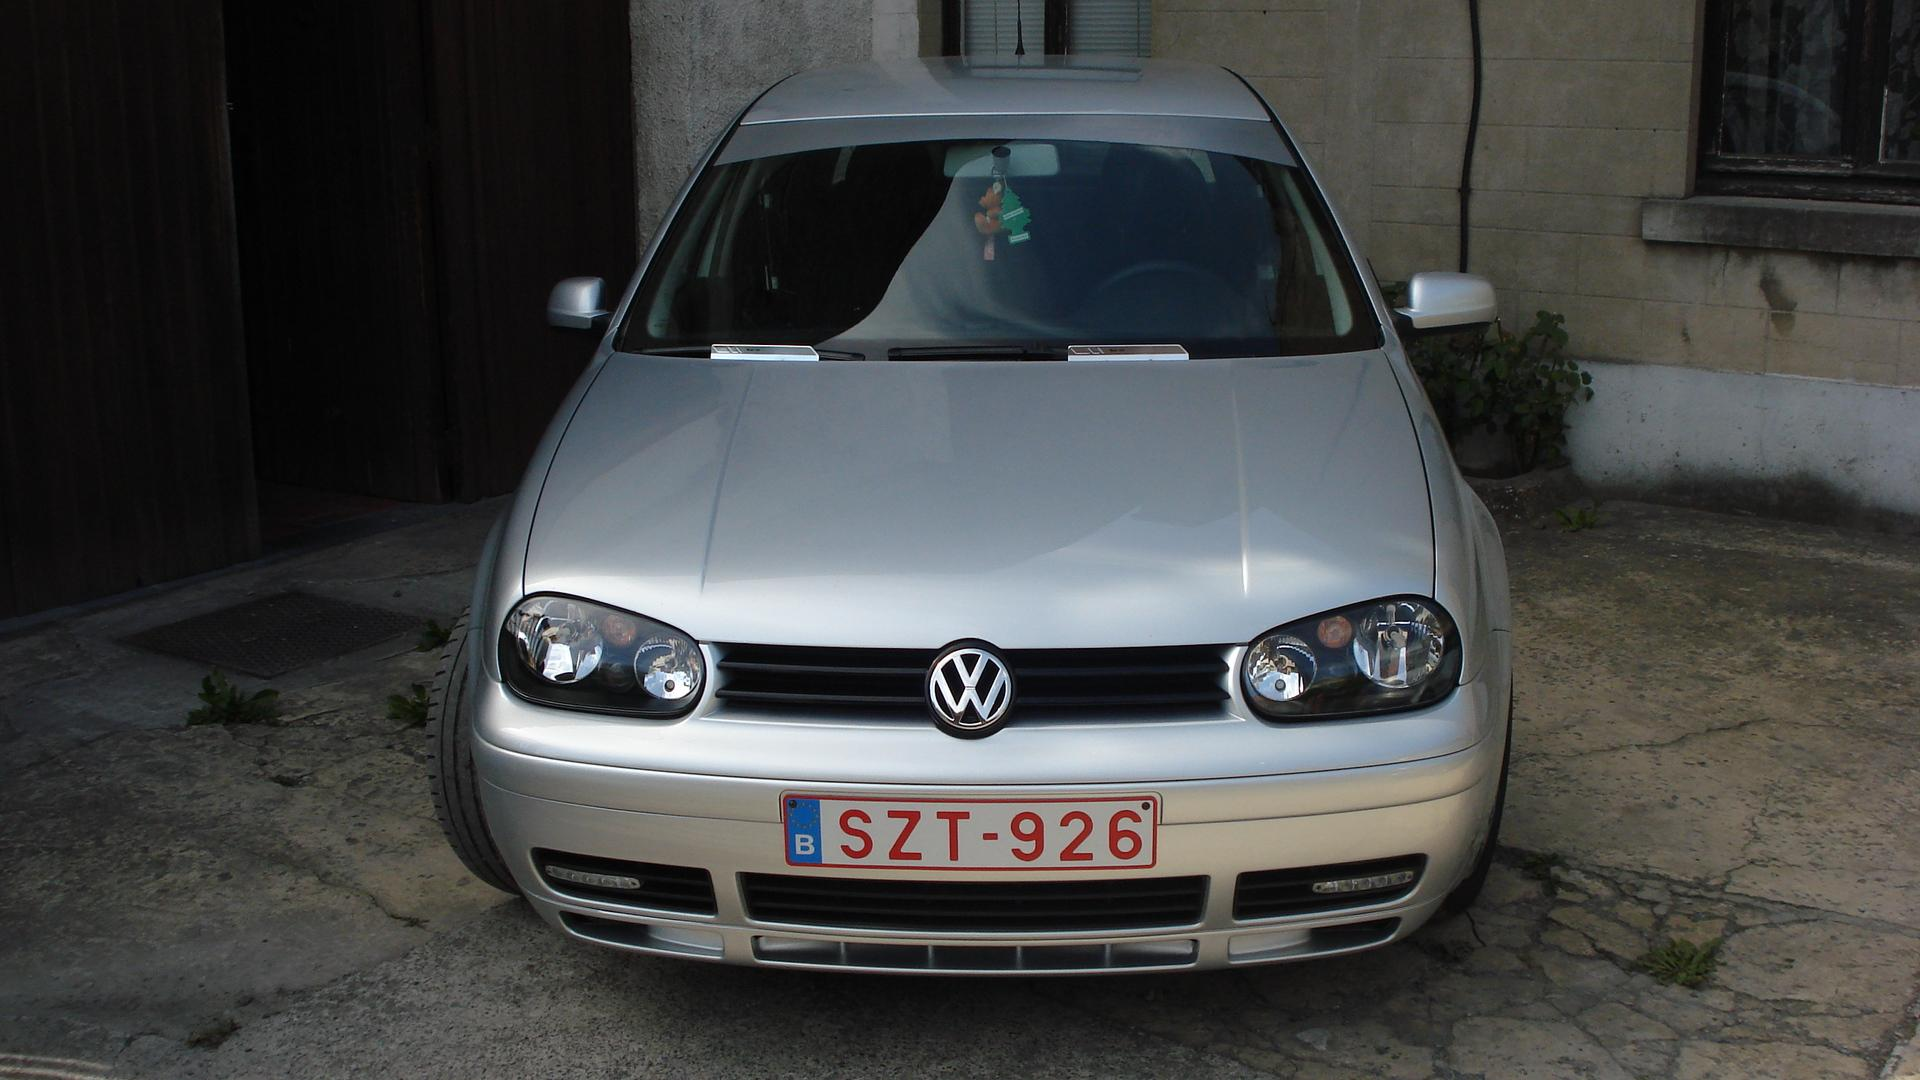 golf iv tdi 90 de podo garage des golf iv tdi 90 page 11 forum volkswagen golf iv. Black Bedroom Furniture Sets. Home Design Ideas